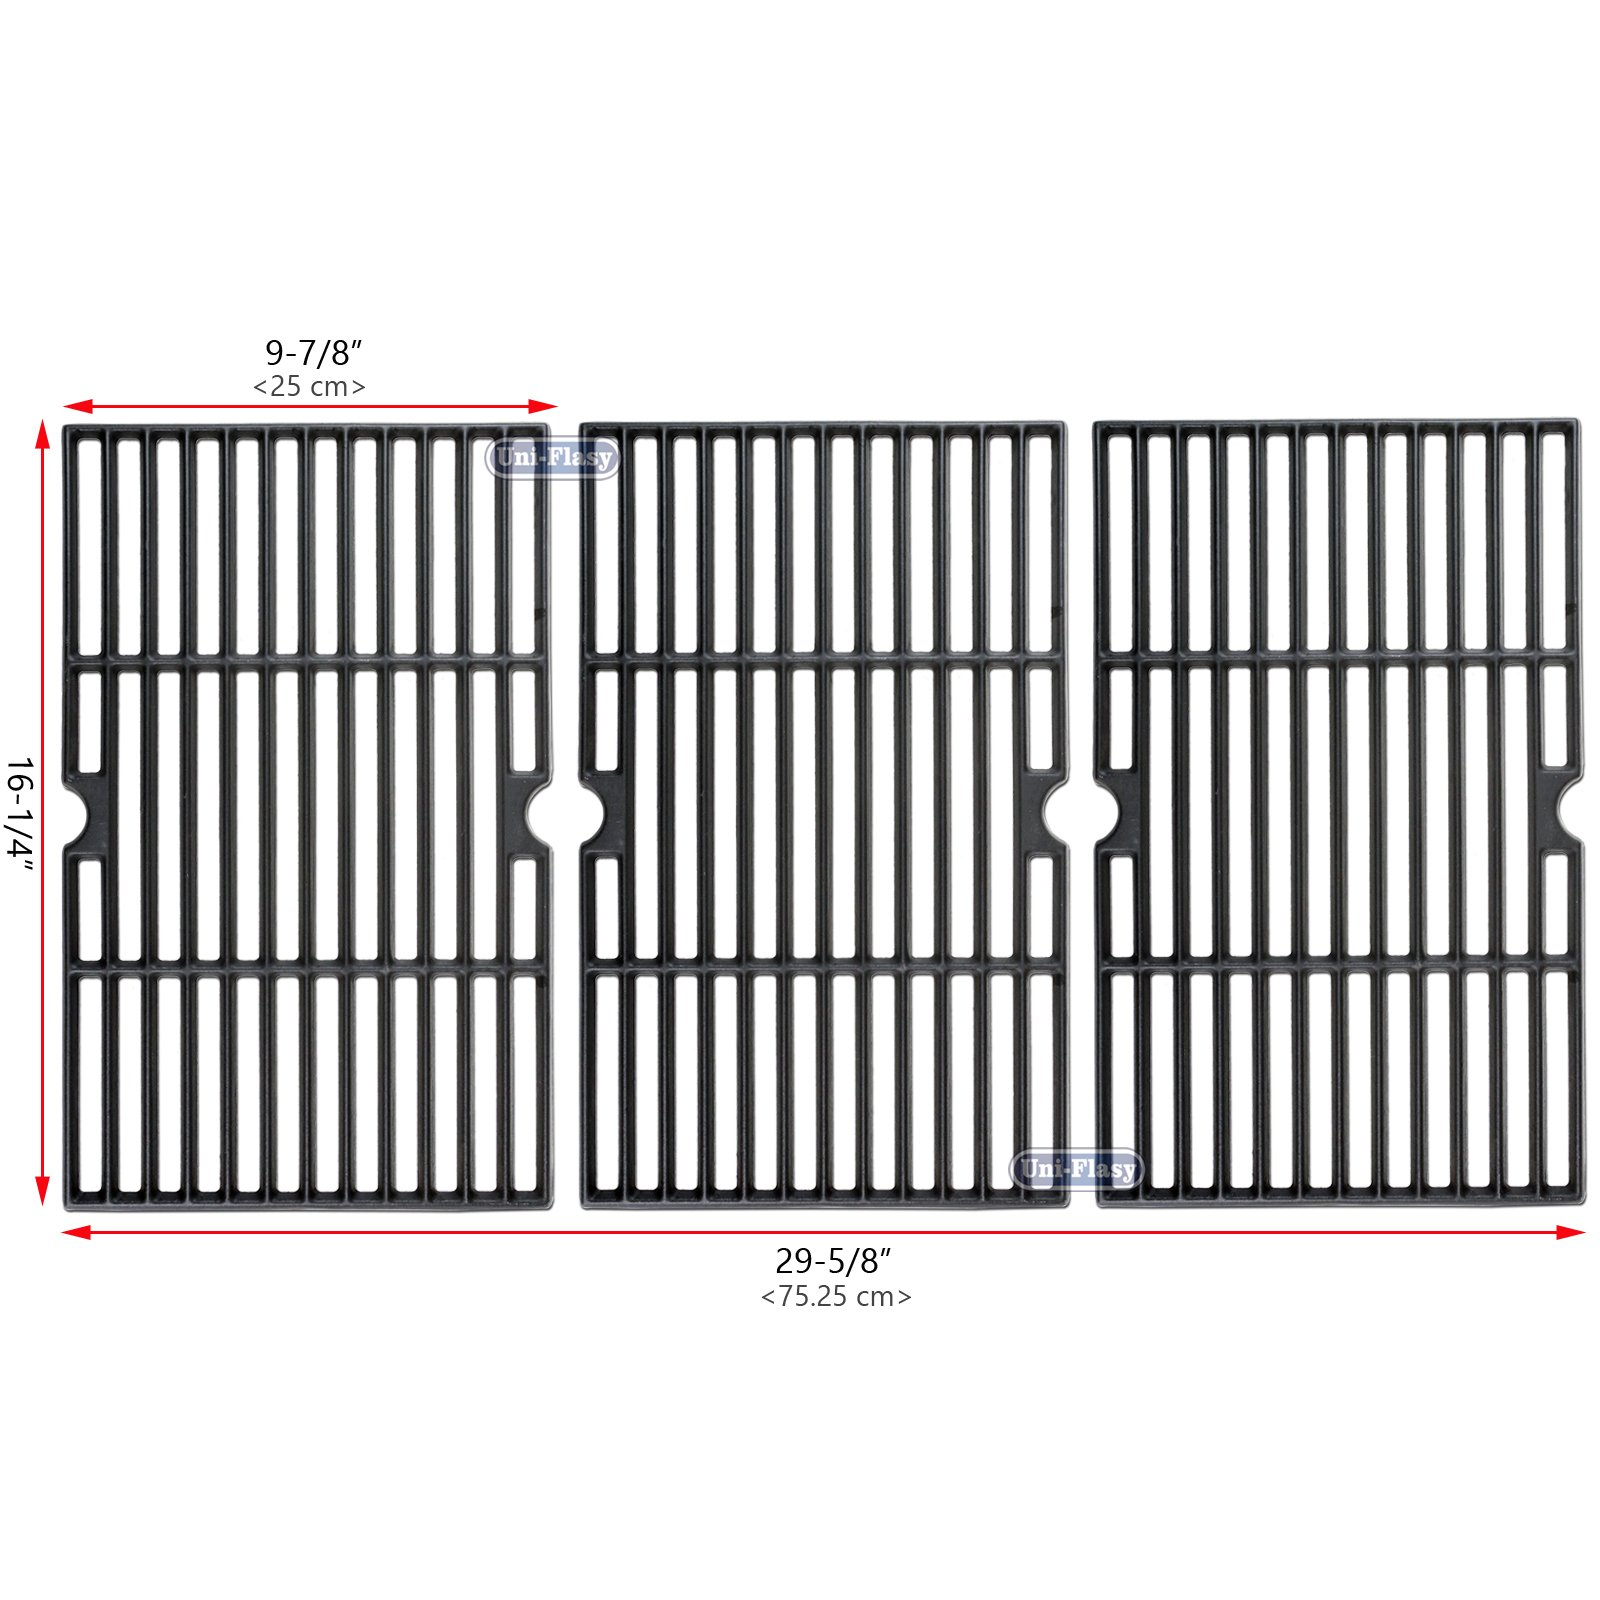 Uniflasy Matte Cast iron Grill Accessories Cooking Grid Grate Replacement Parts for Backyard BY13-101-001-13, GBC1460W, Better Homes and Gardens BH14-101-099-01, Uniflame GBC1059WB